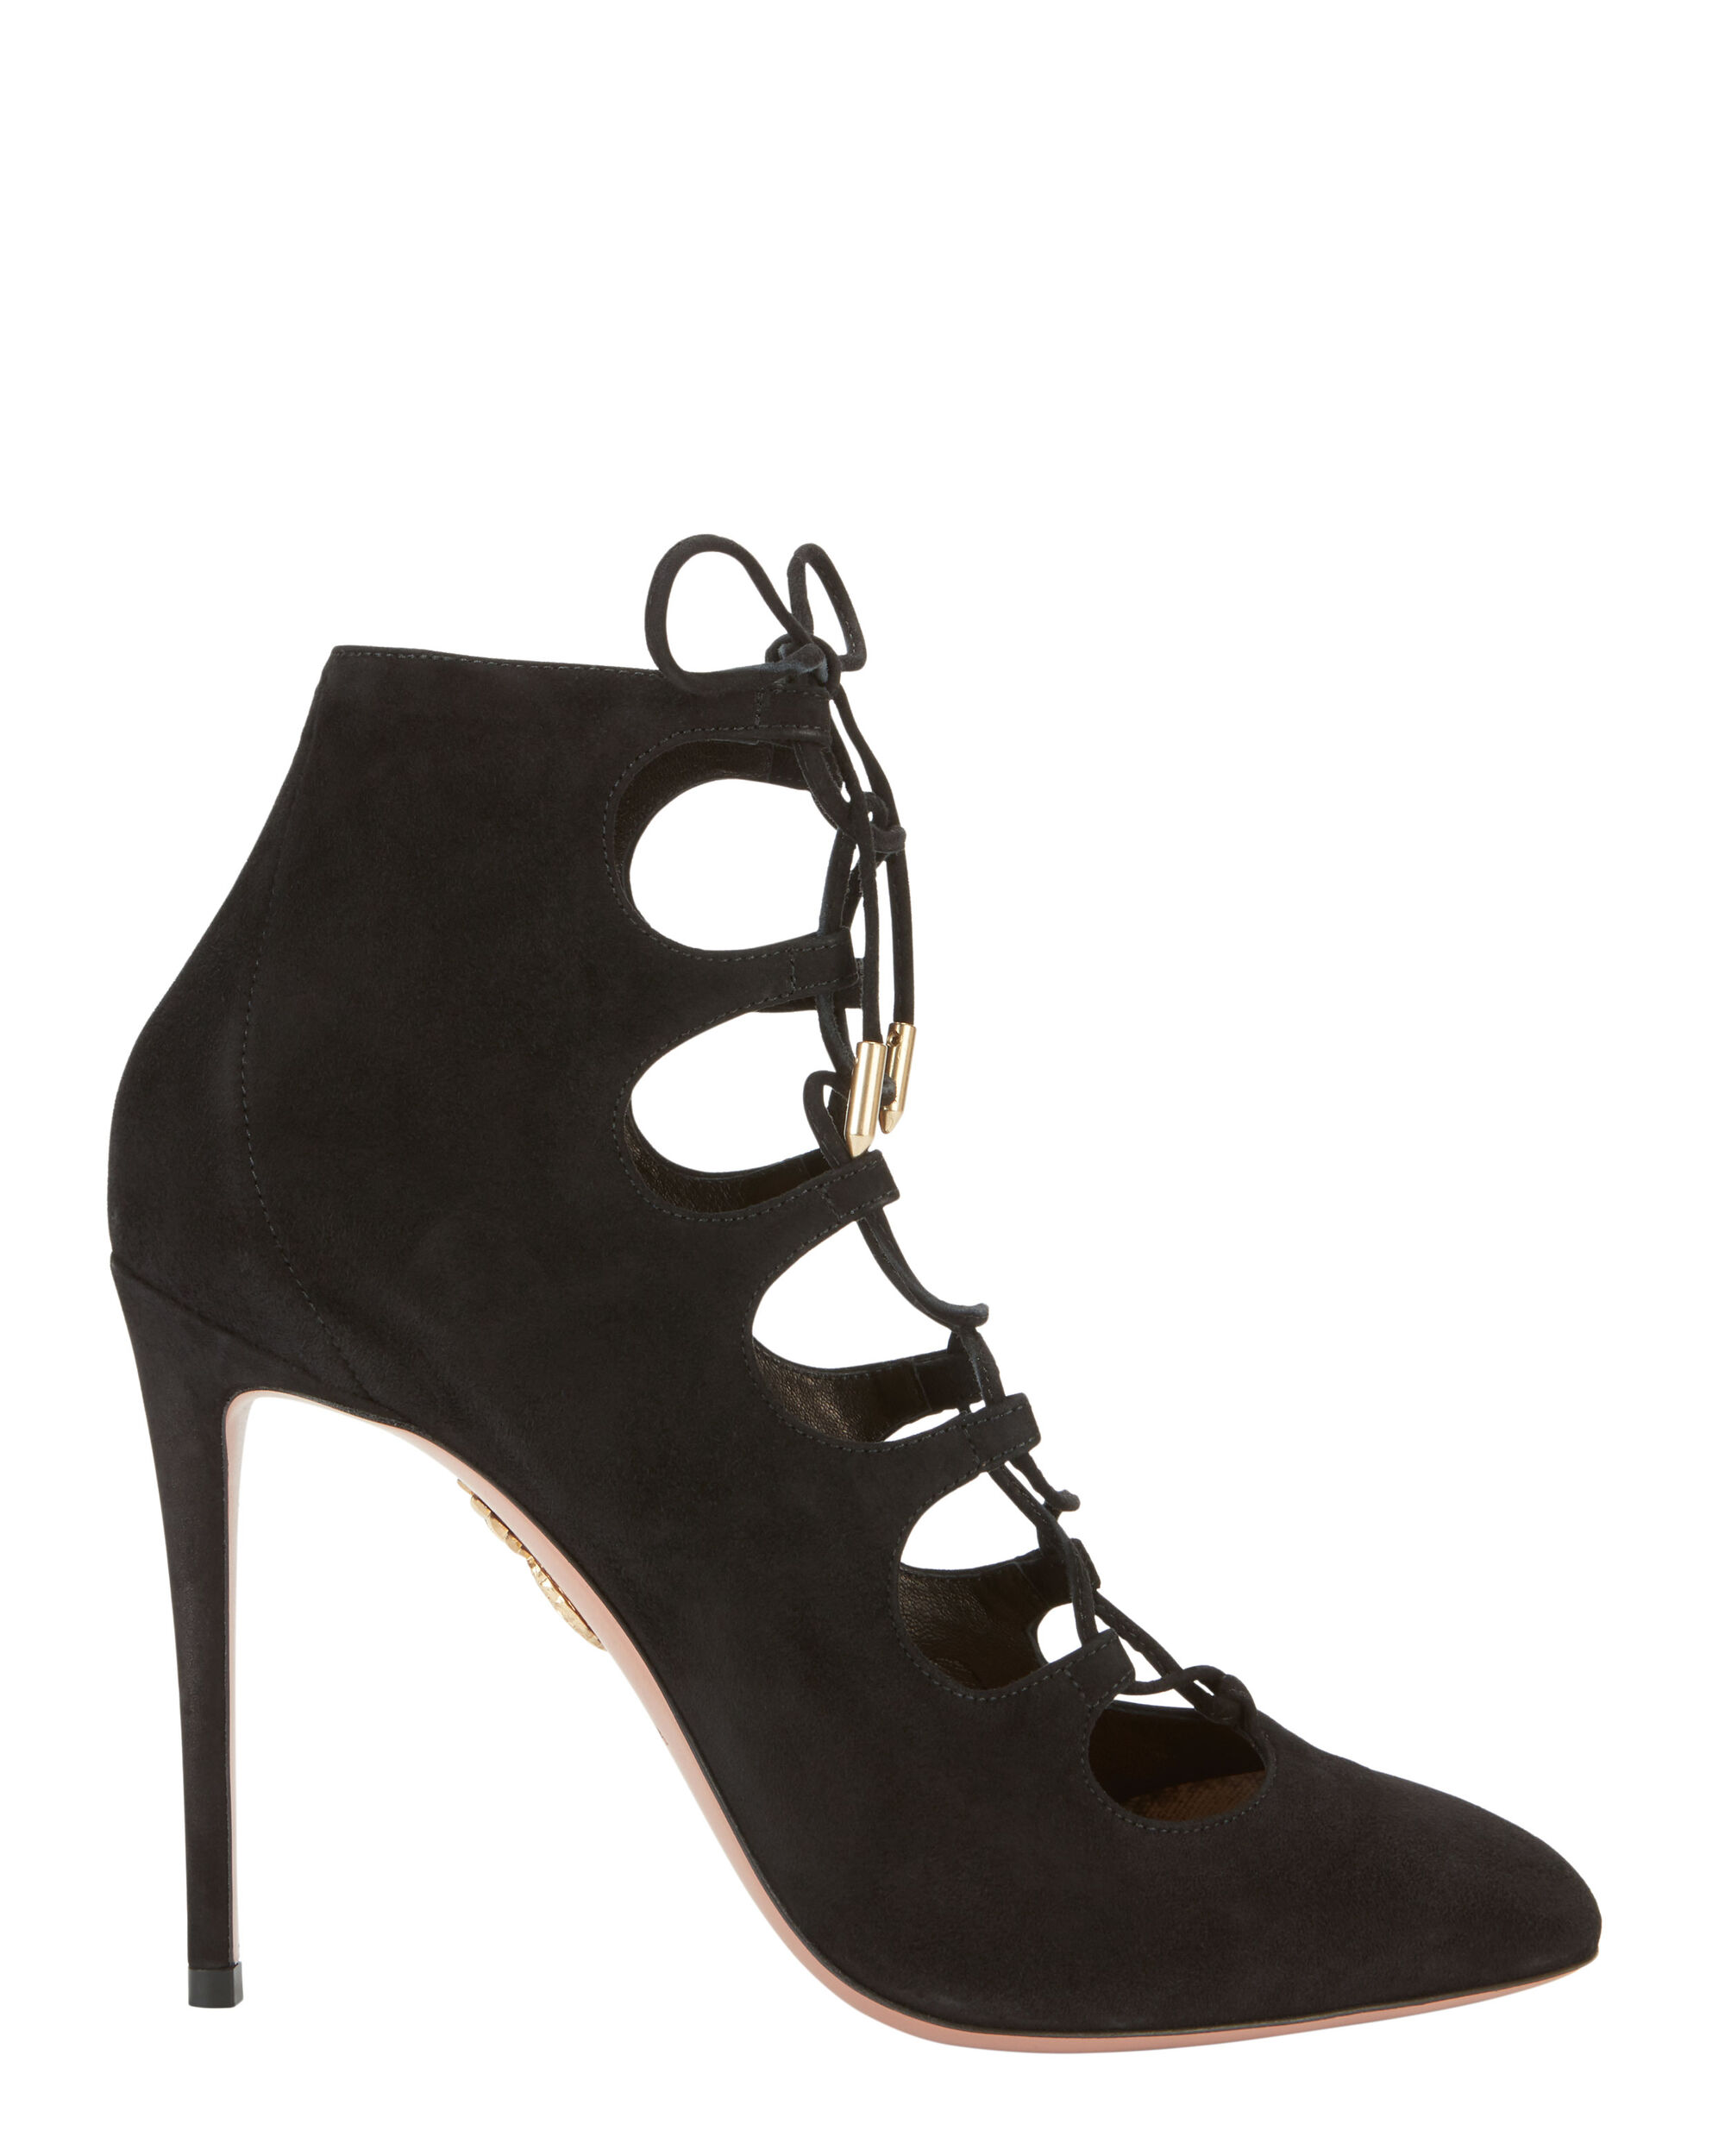 Flirt Lace-Up Booties, BLACK, hi-res